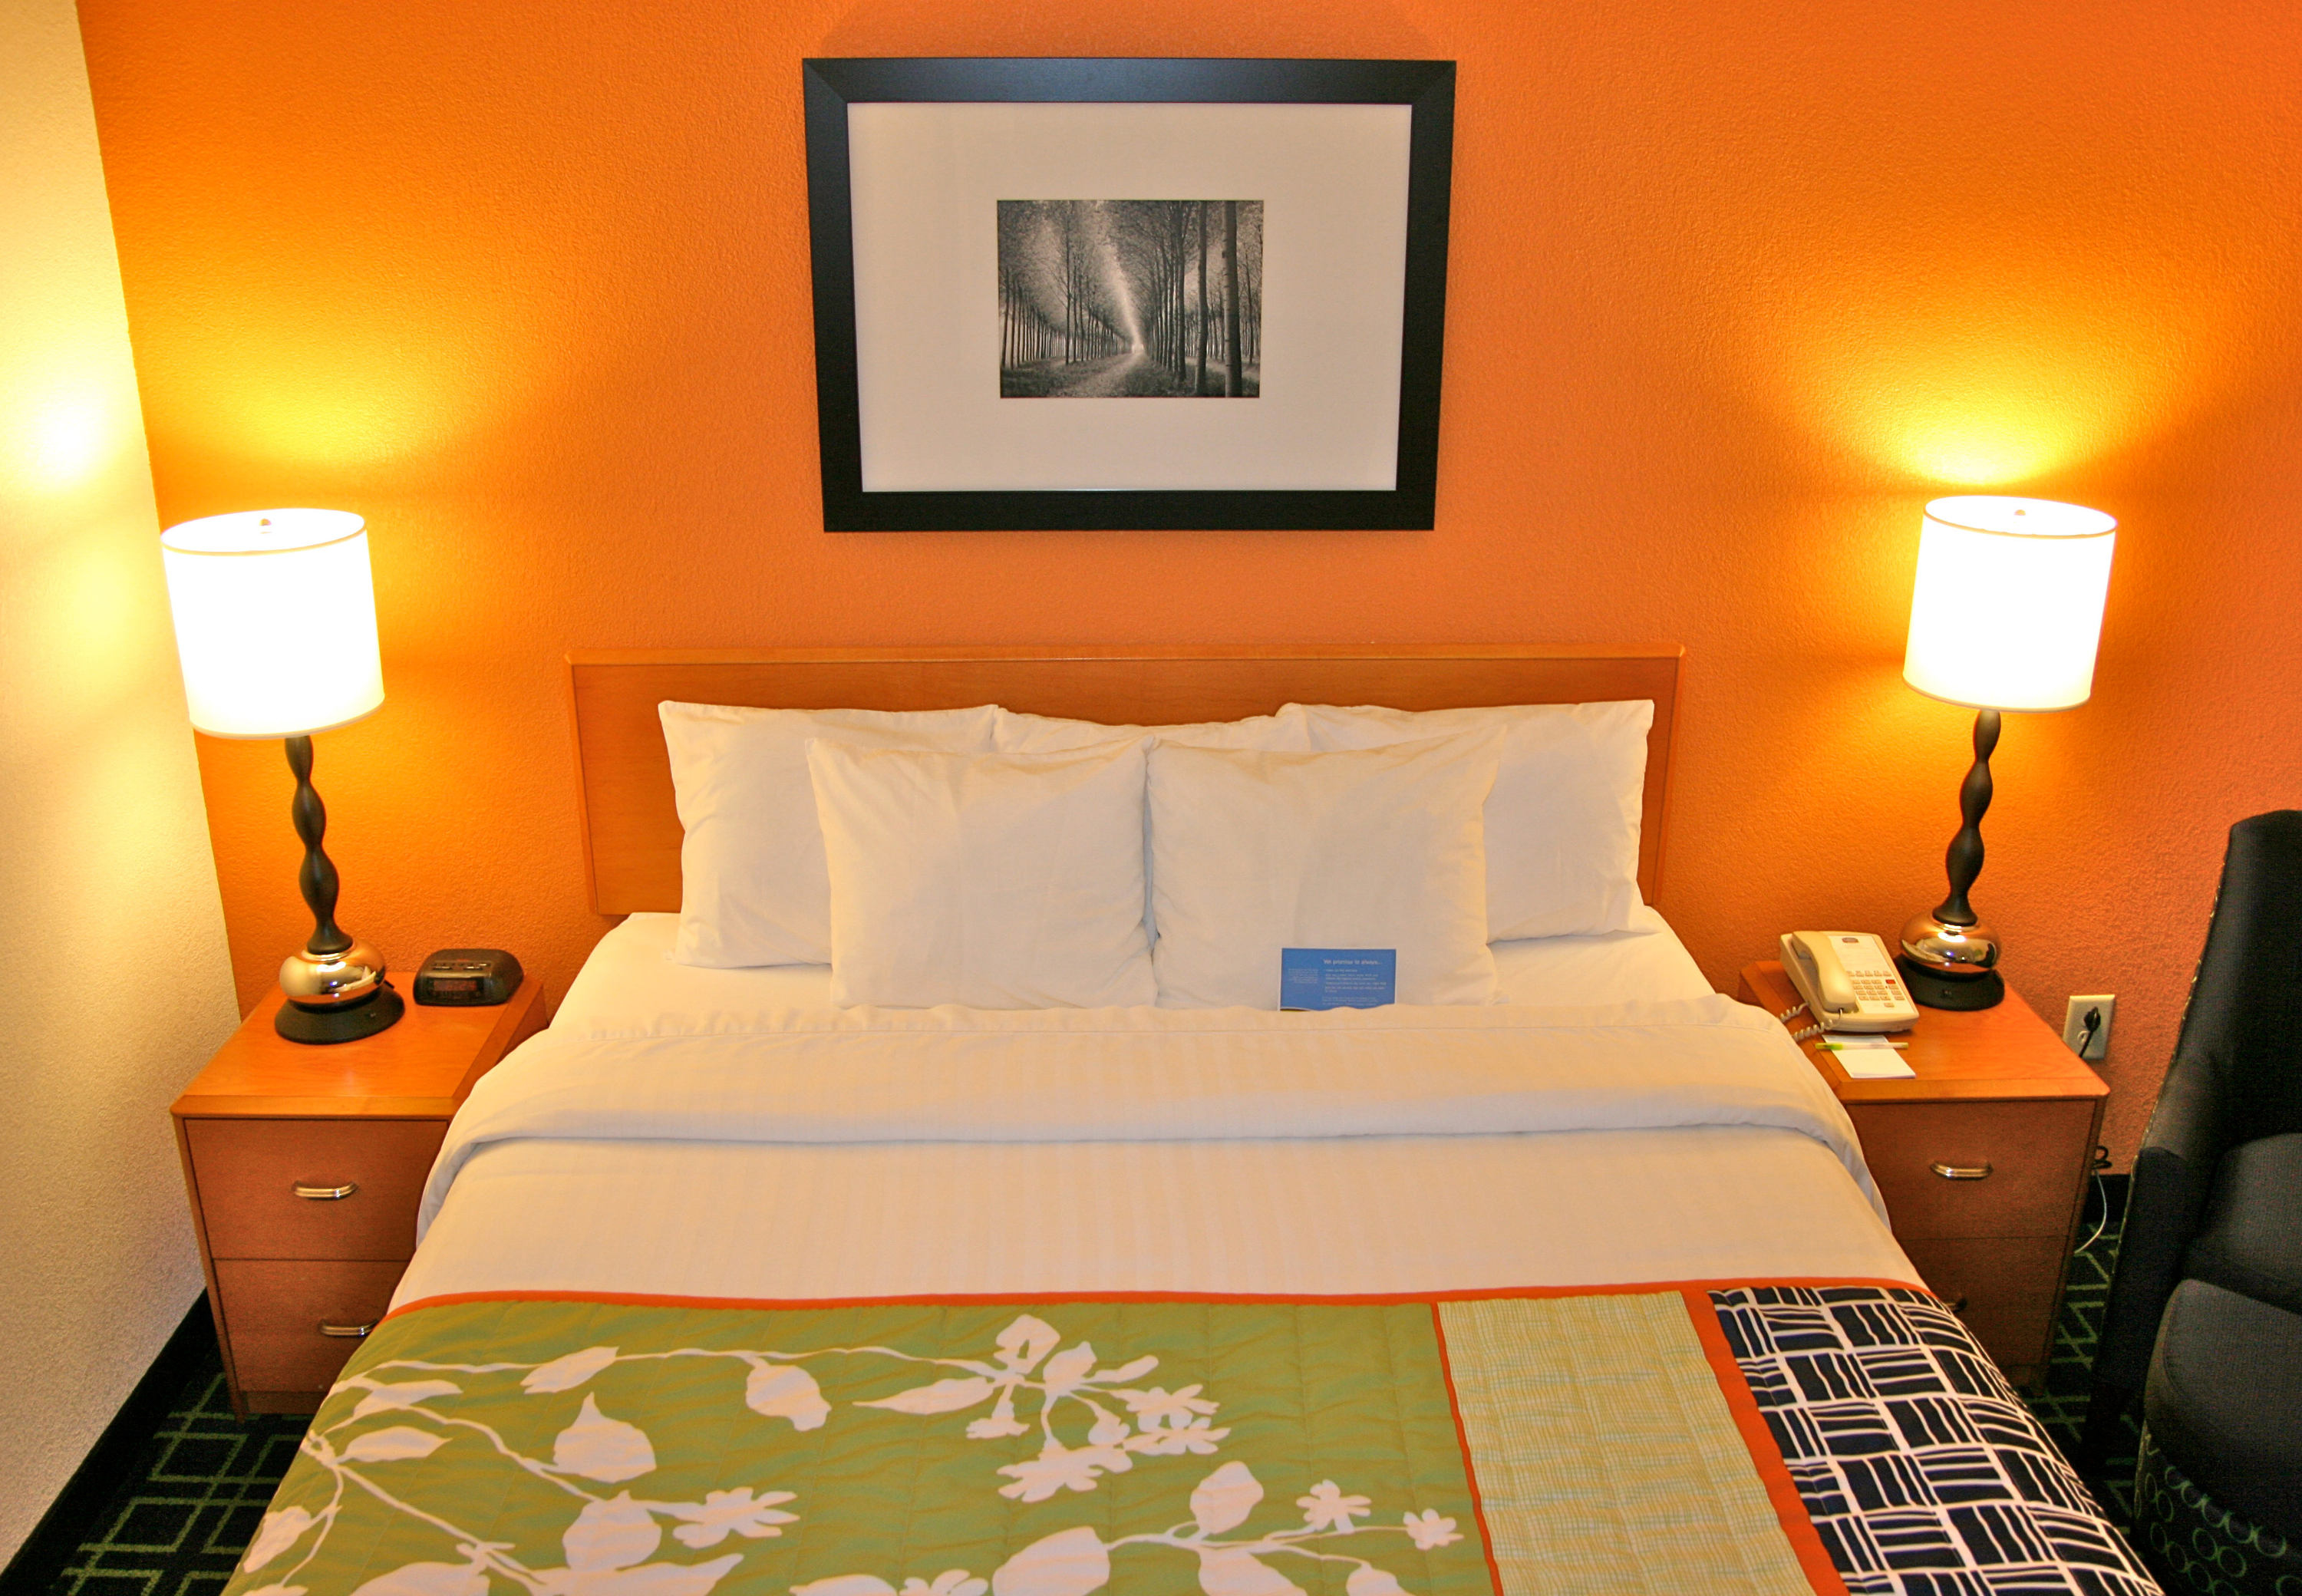 Fairfield Inn & Suites by Marriott Youngstown Austintown image 1